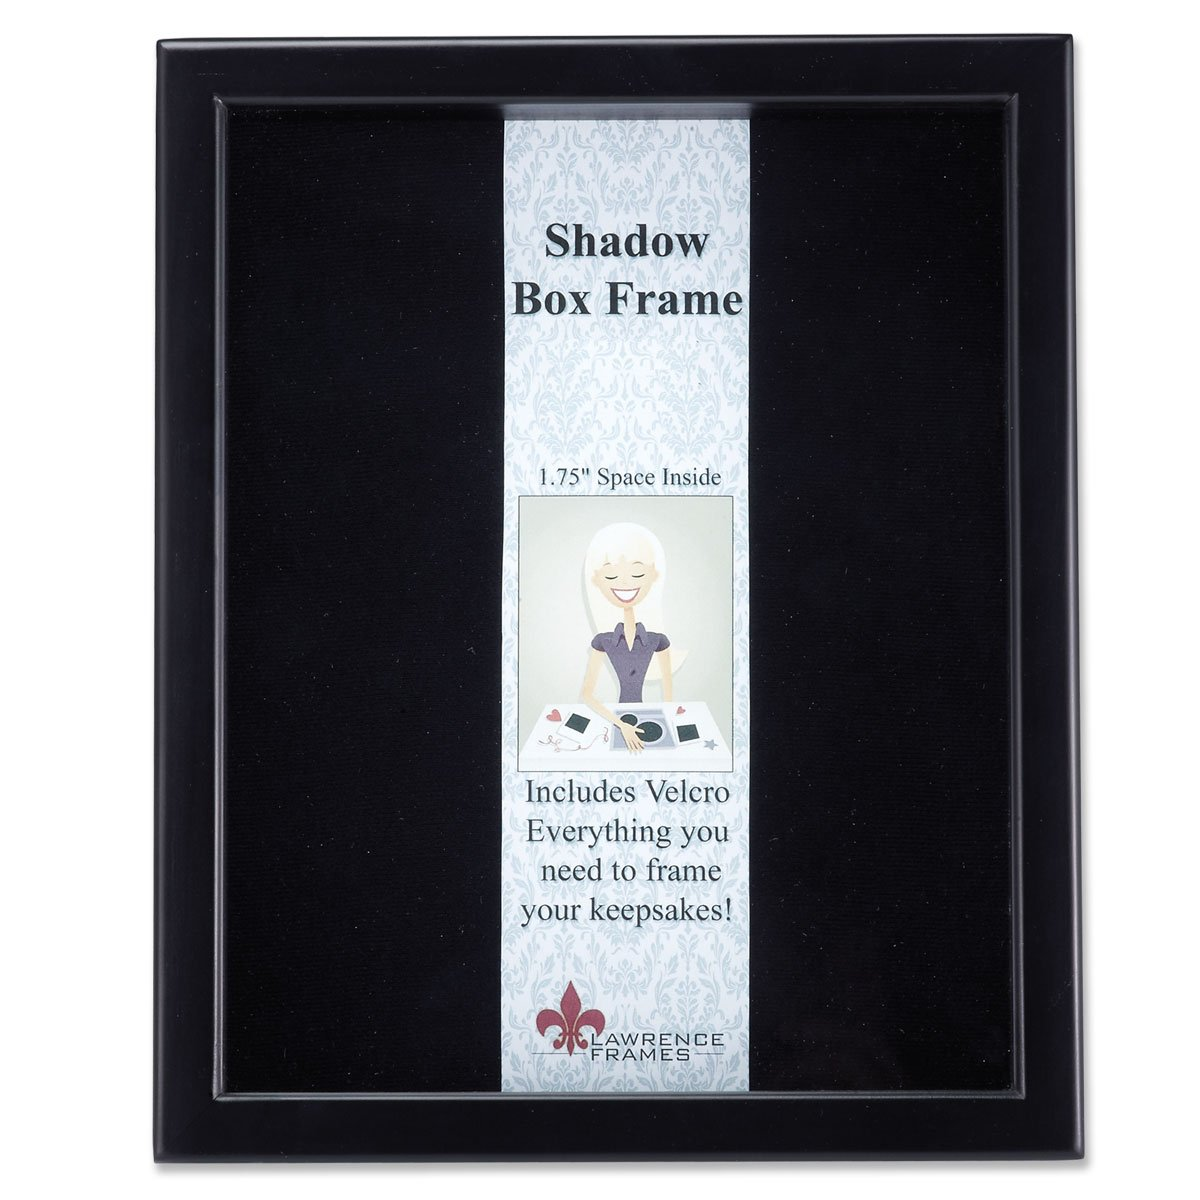 Lawrence Frames 790011 Black Wood Shadow Box Picture Frame, 11 by 14-Inch by Lawrence Frames